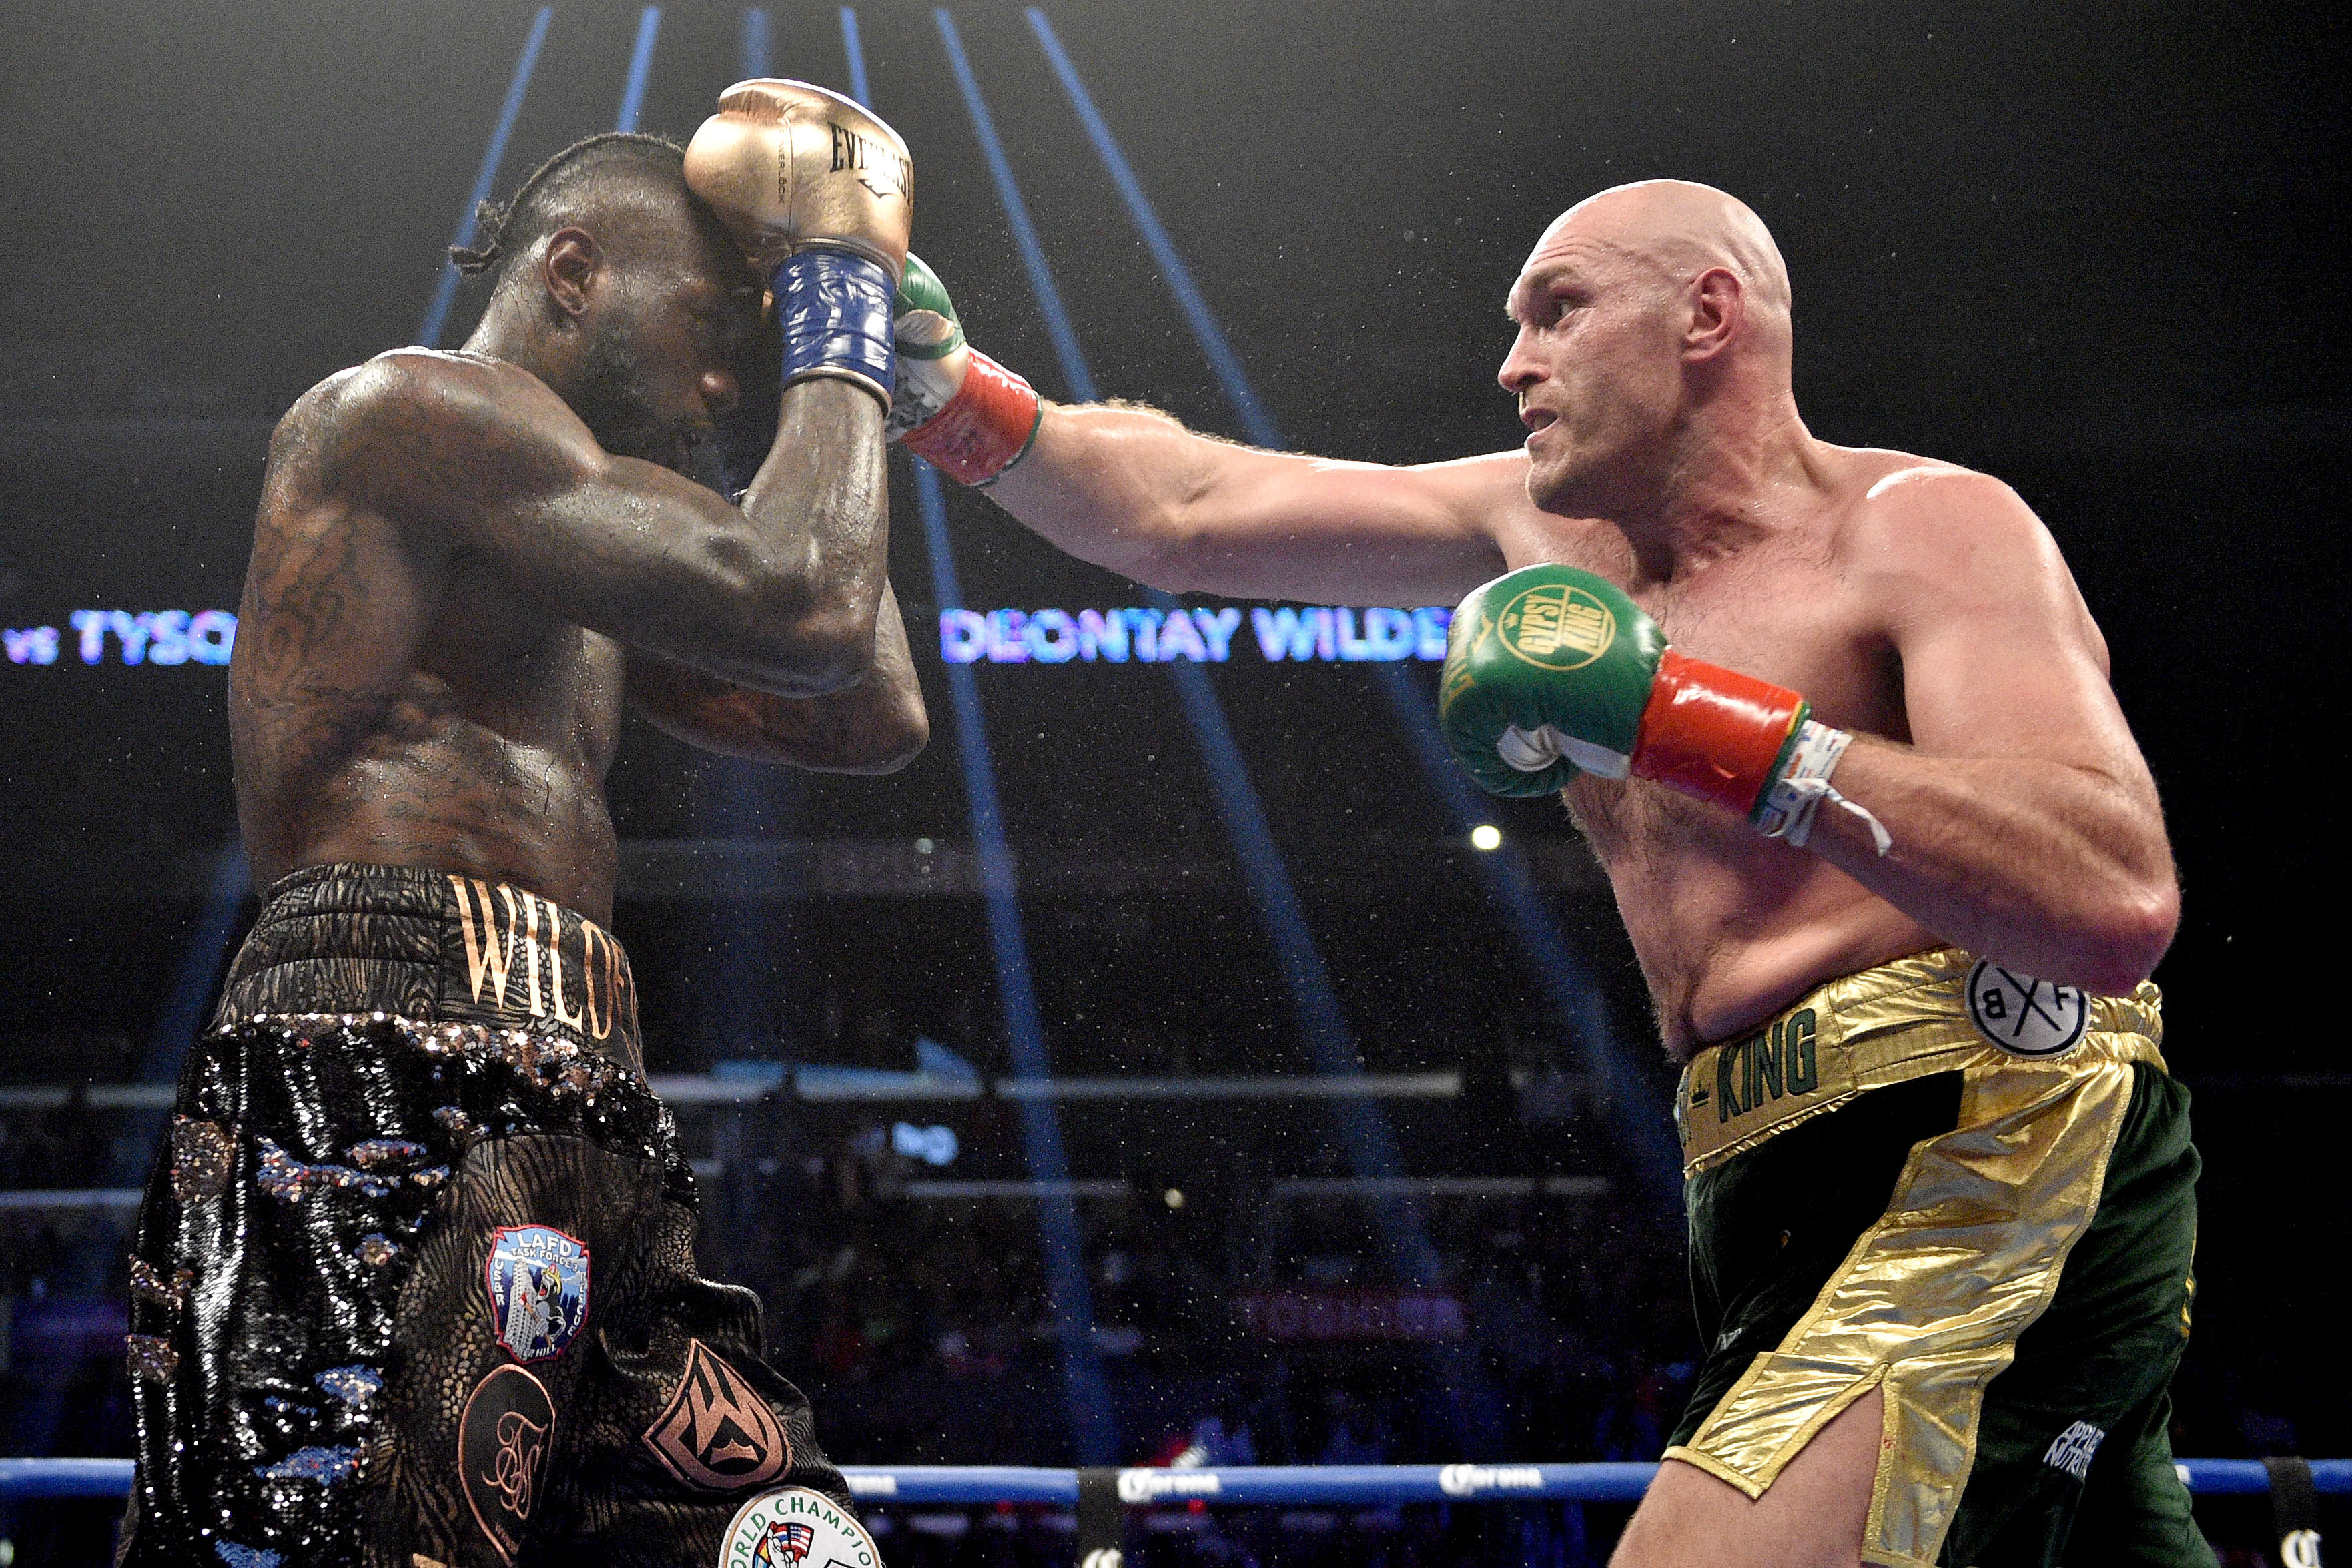 Wilder retains WBC title after contentious draw with Fury